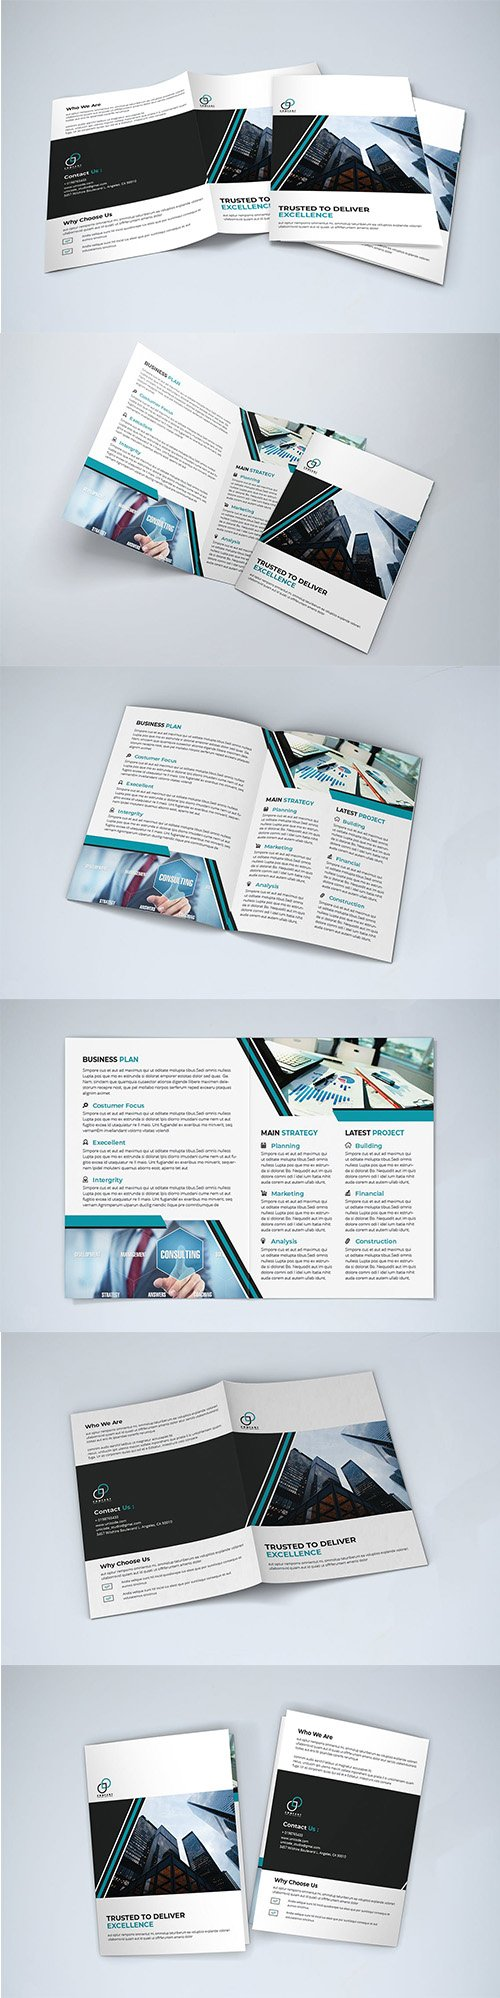 Bifold Business Indesign Brochure